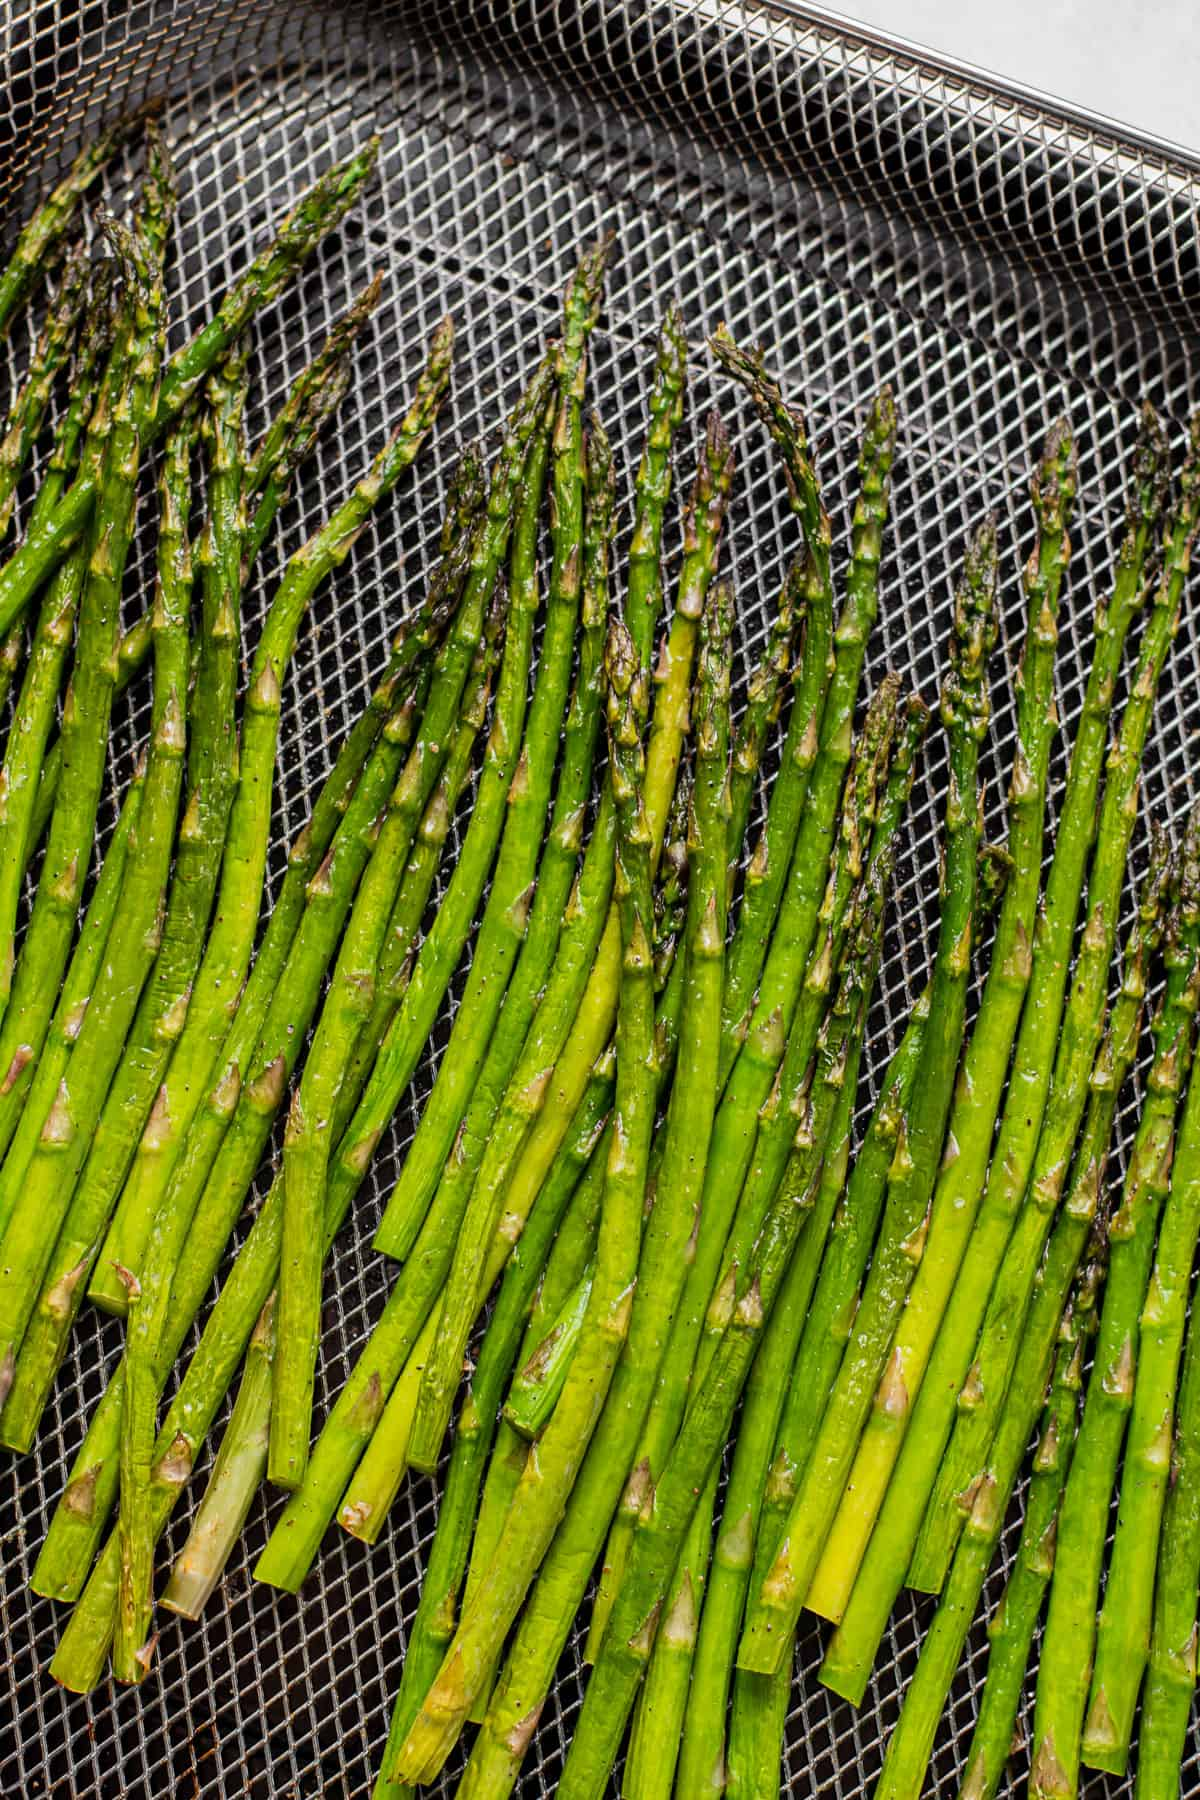 Asparagus cooked in the air fryer.